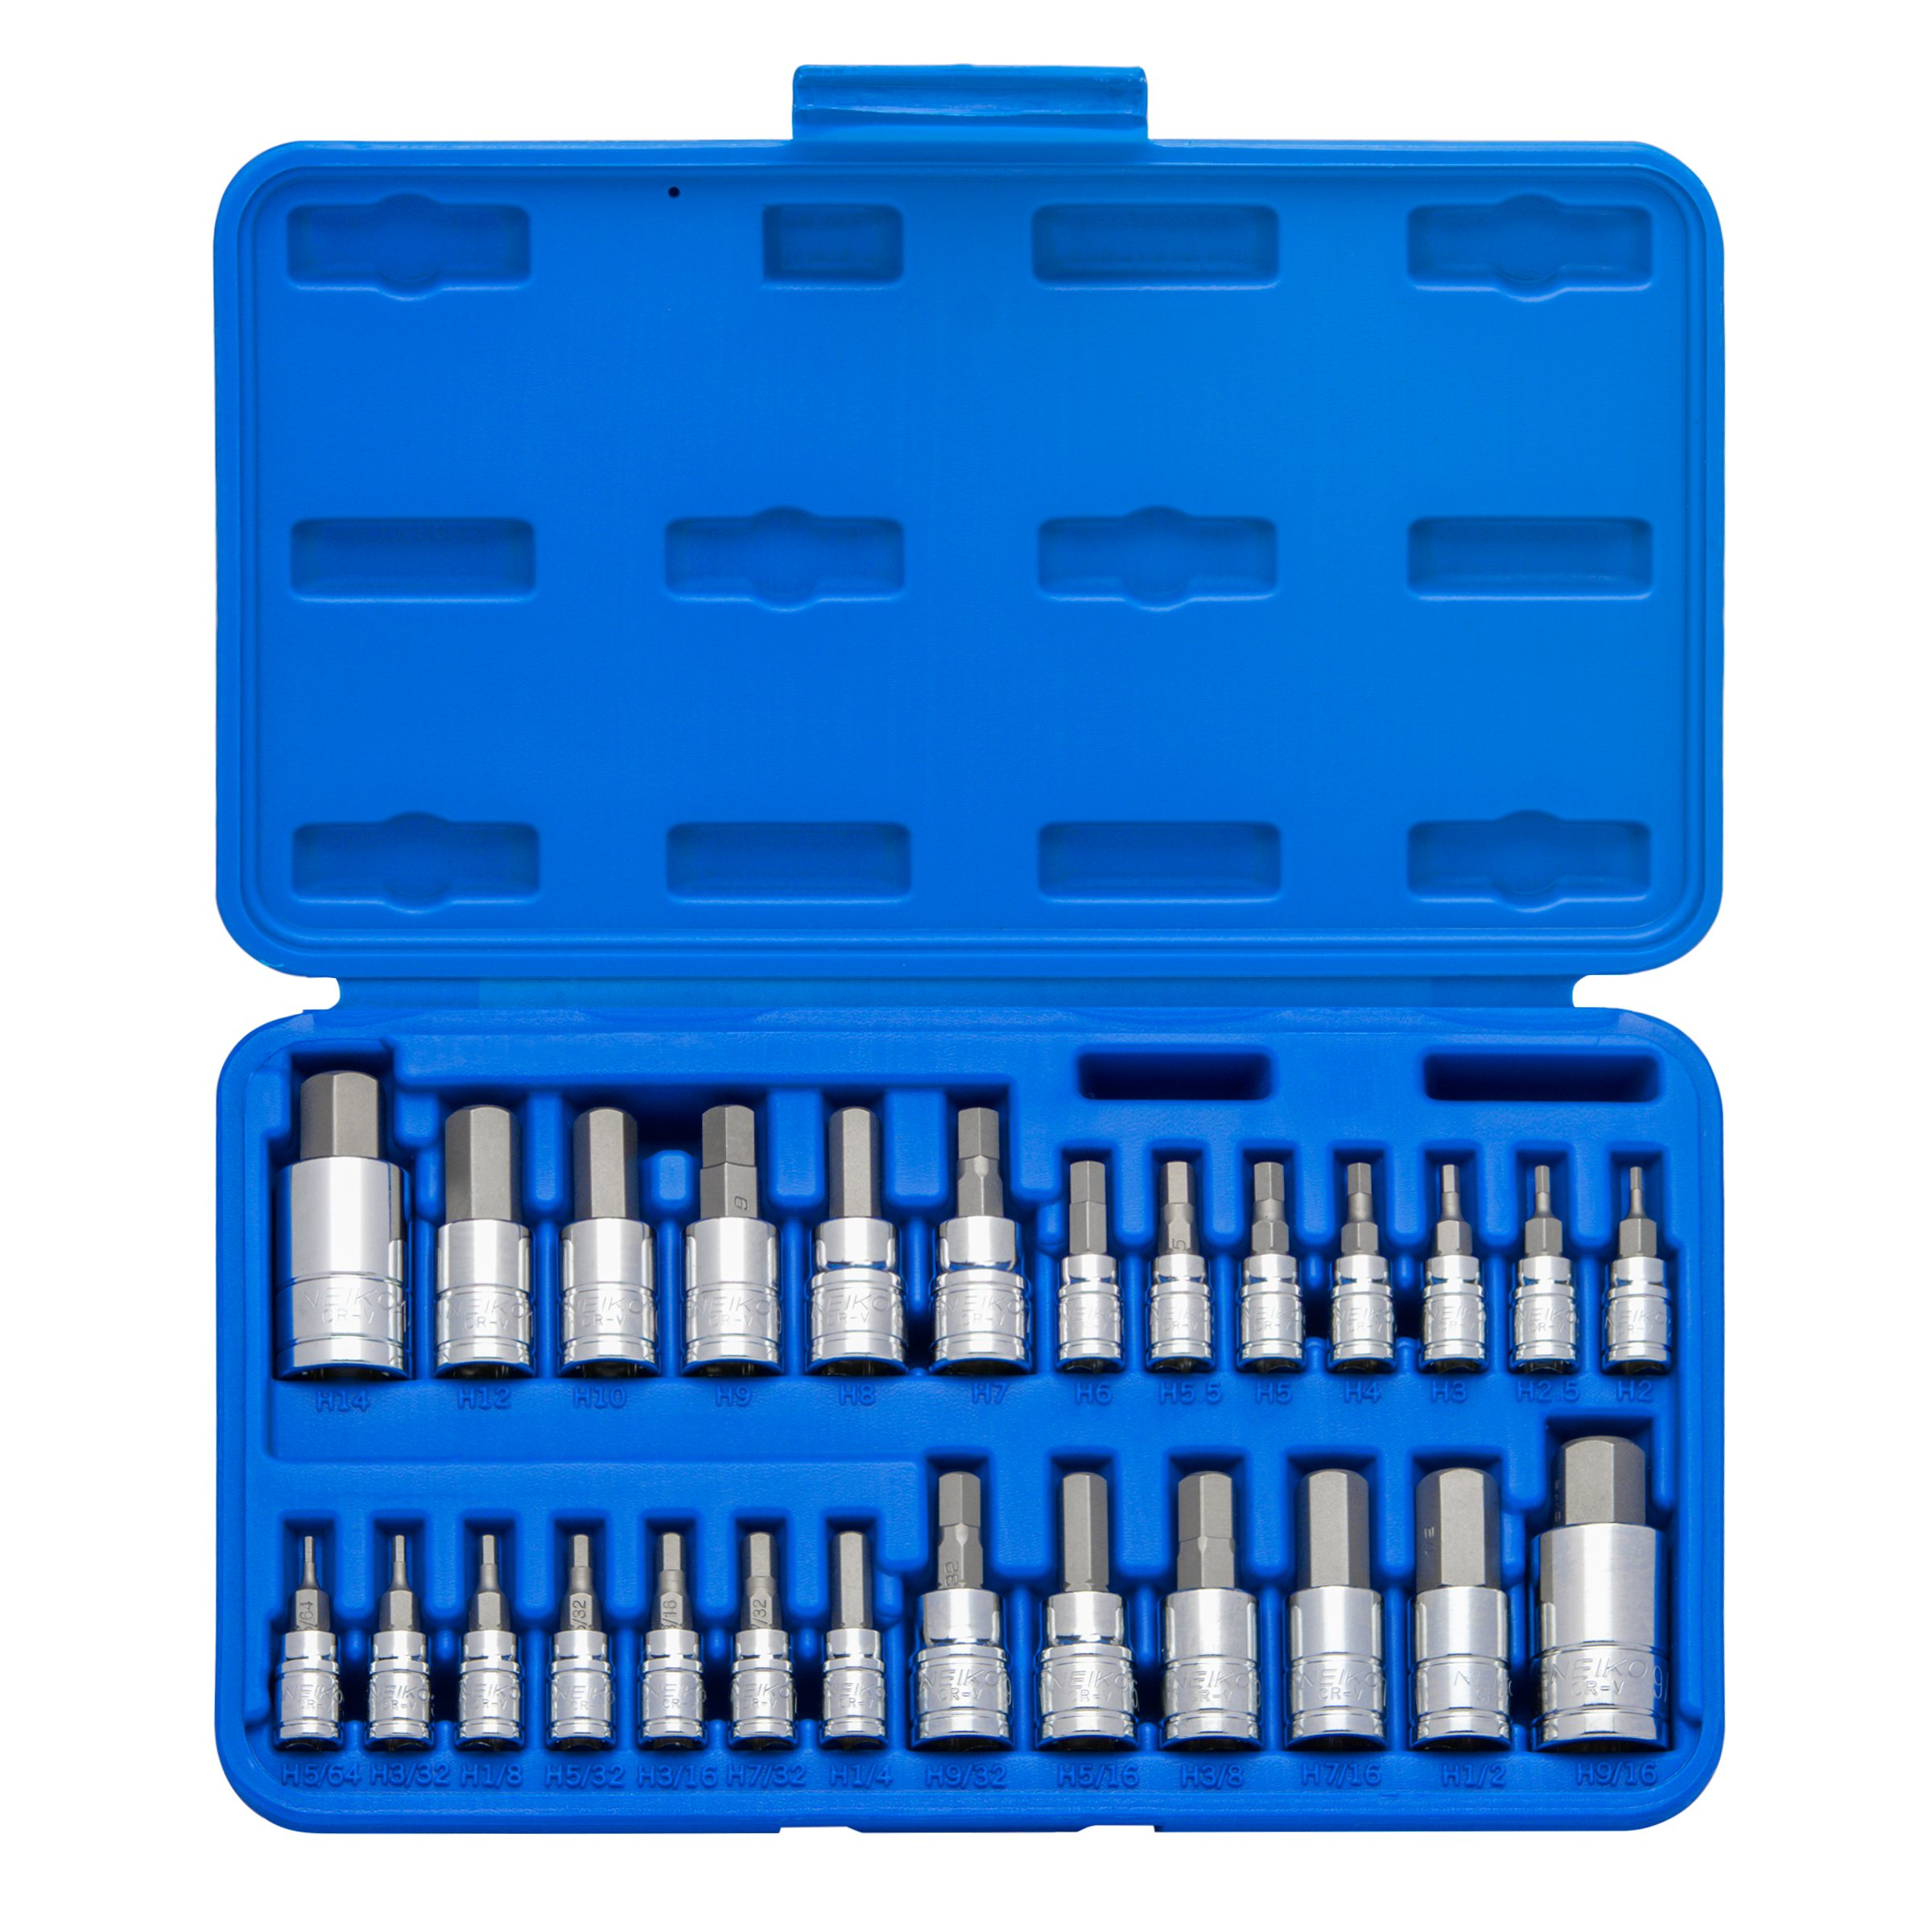 Neiko 01144A Tamper-Proof Hex Bit Socket Set, 26 Pieces | SAE 5/64-9/16'', Metric 2-14MM